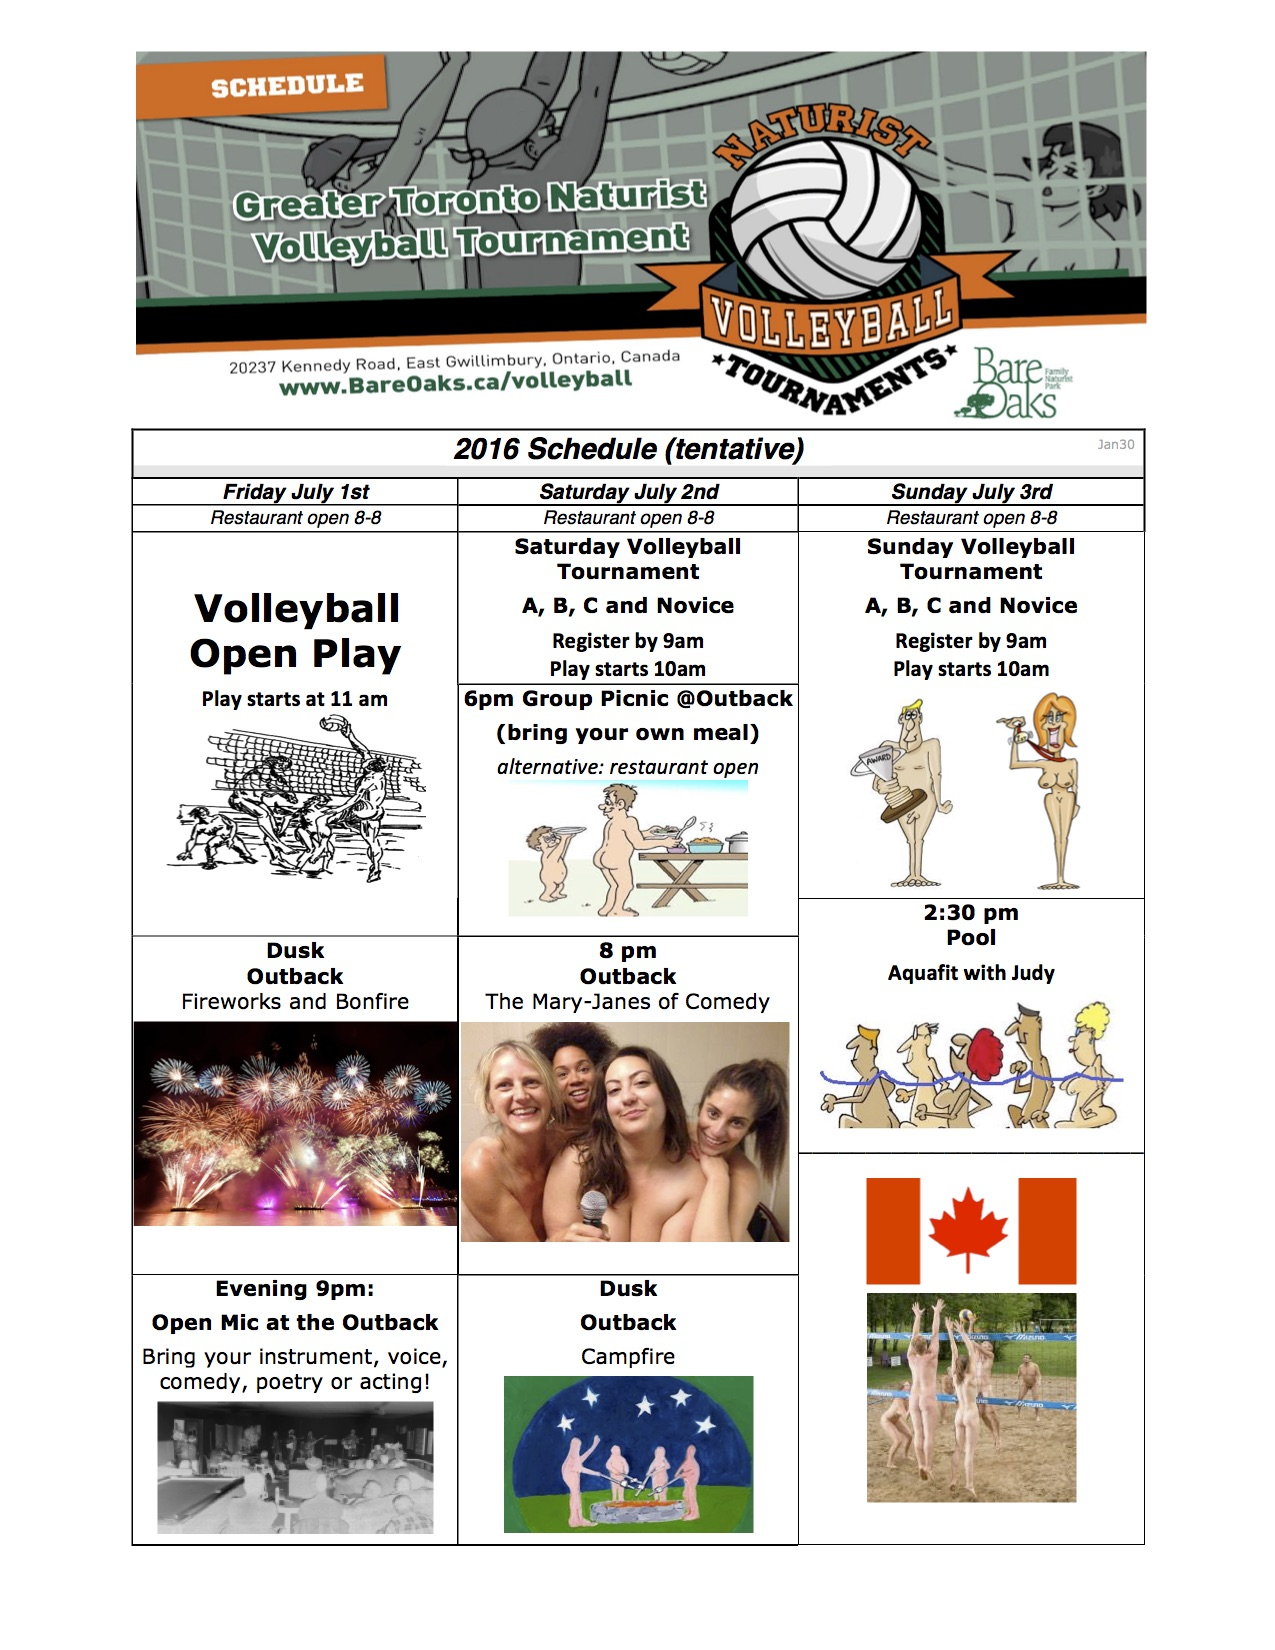 10th Annual GTA Nude Volleyball Tournament Schedule